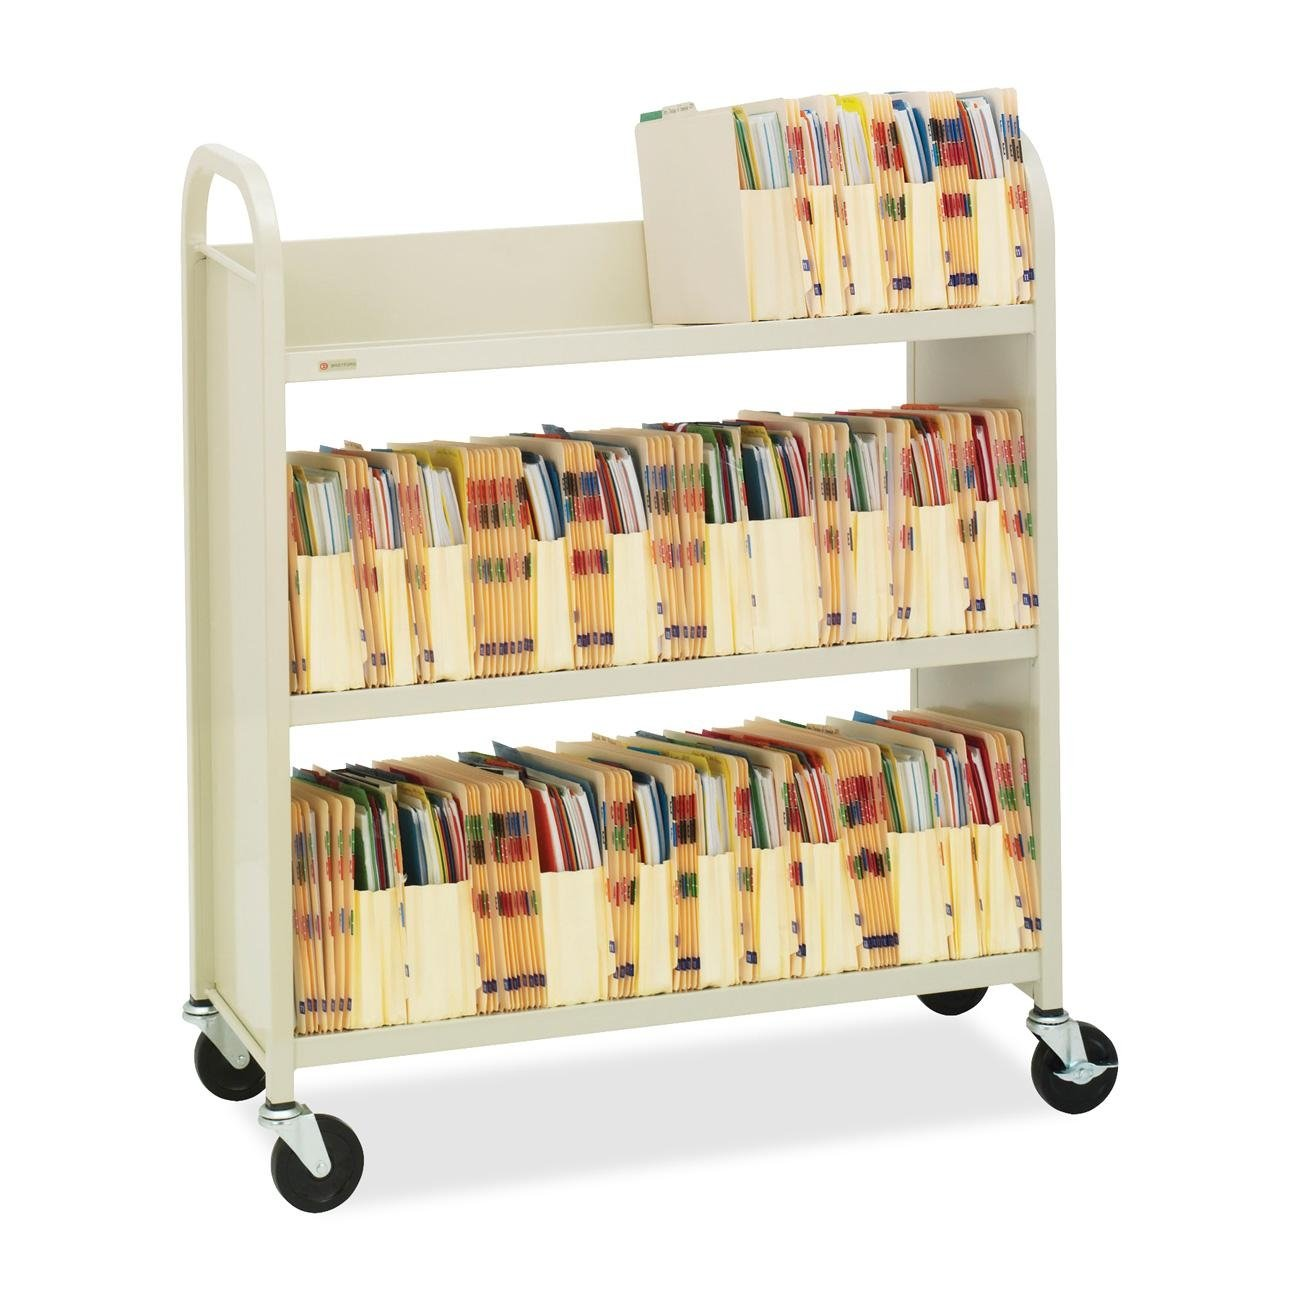 BREL330 – Bretford Steel Slant Shelf Single-Sided Book Cart Stand